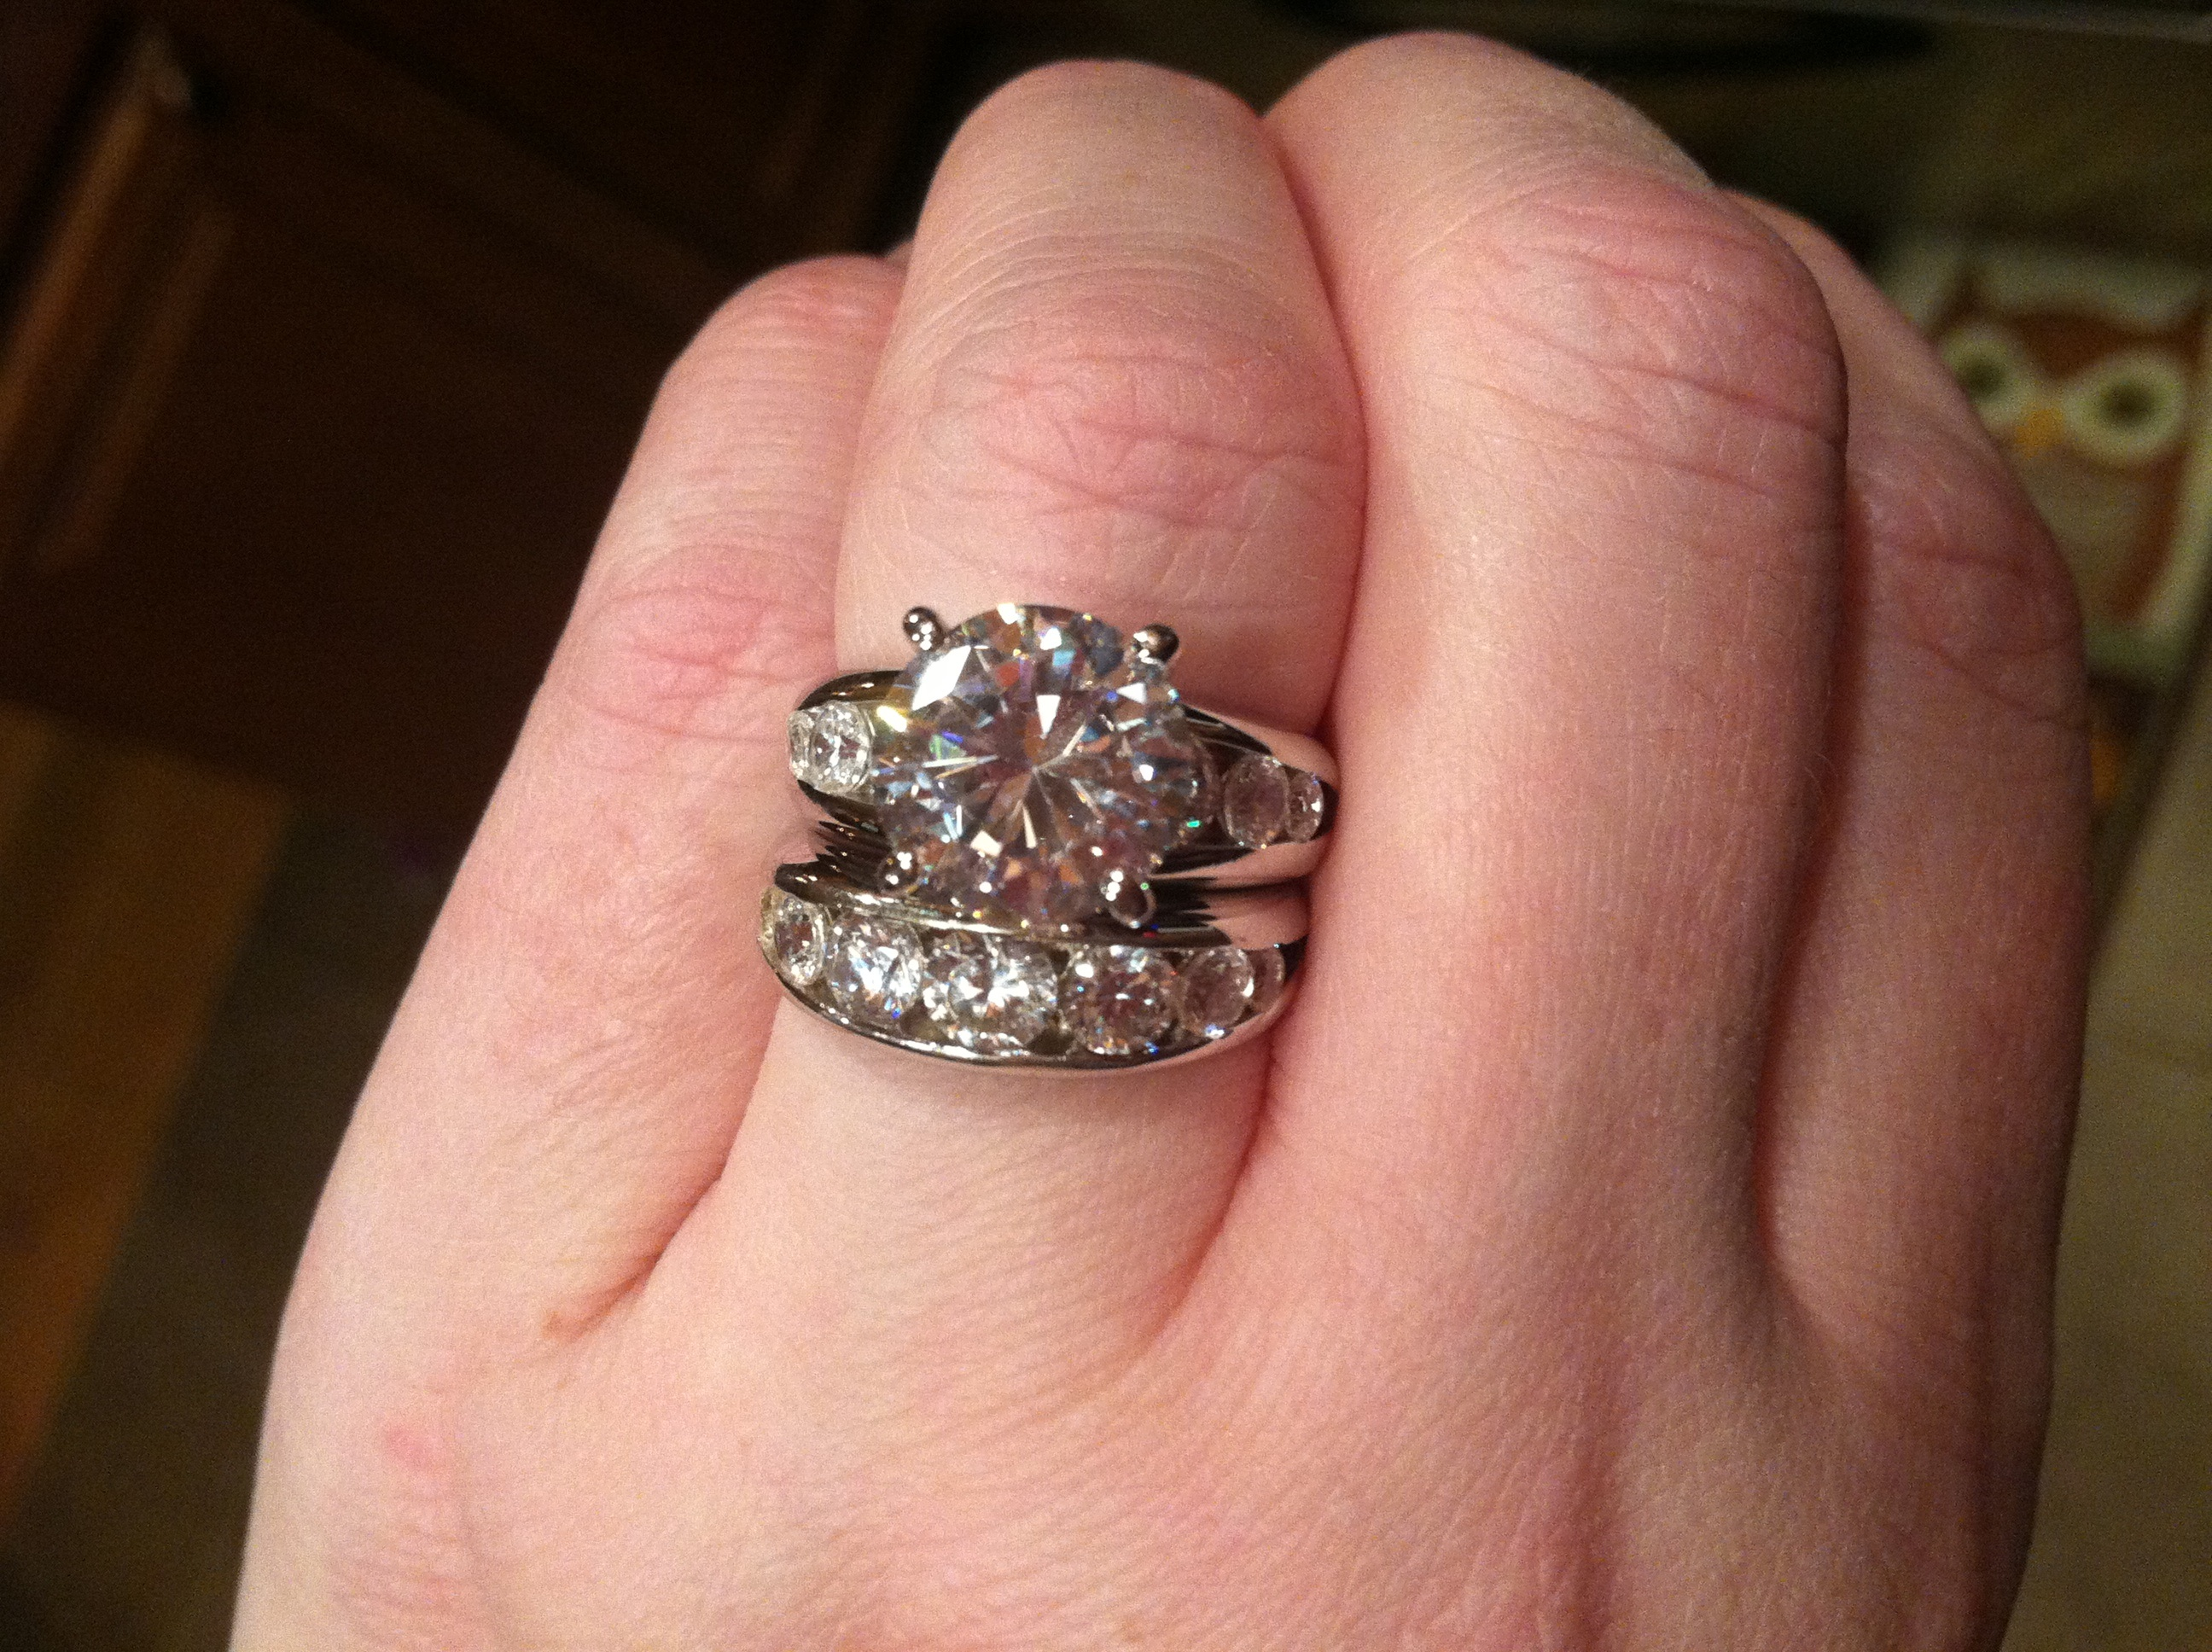 Women's Cubic Zirconia Rings - Save on the Latest Trends                                         Ad                                                                                                                 Viewing ads is privacy protected by DuckDuckGo. Ad clicks are managed by Microsoft's ad network (more info).